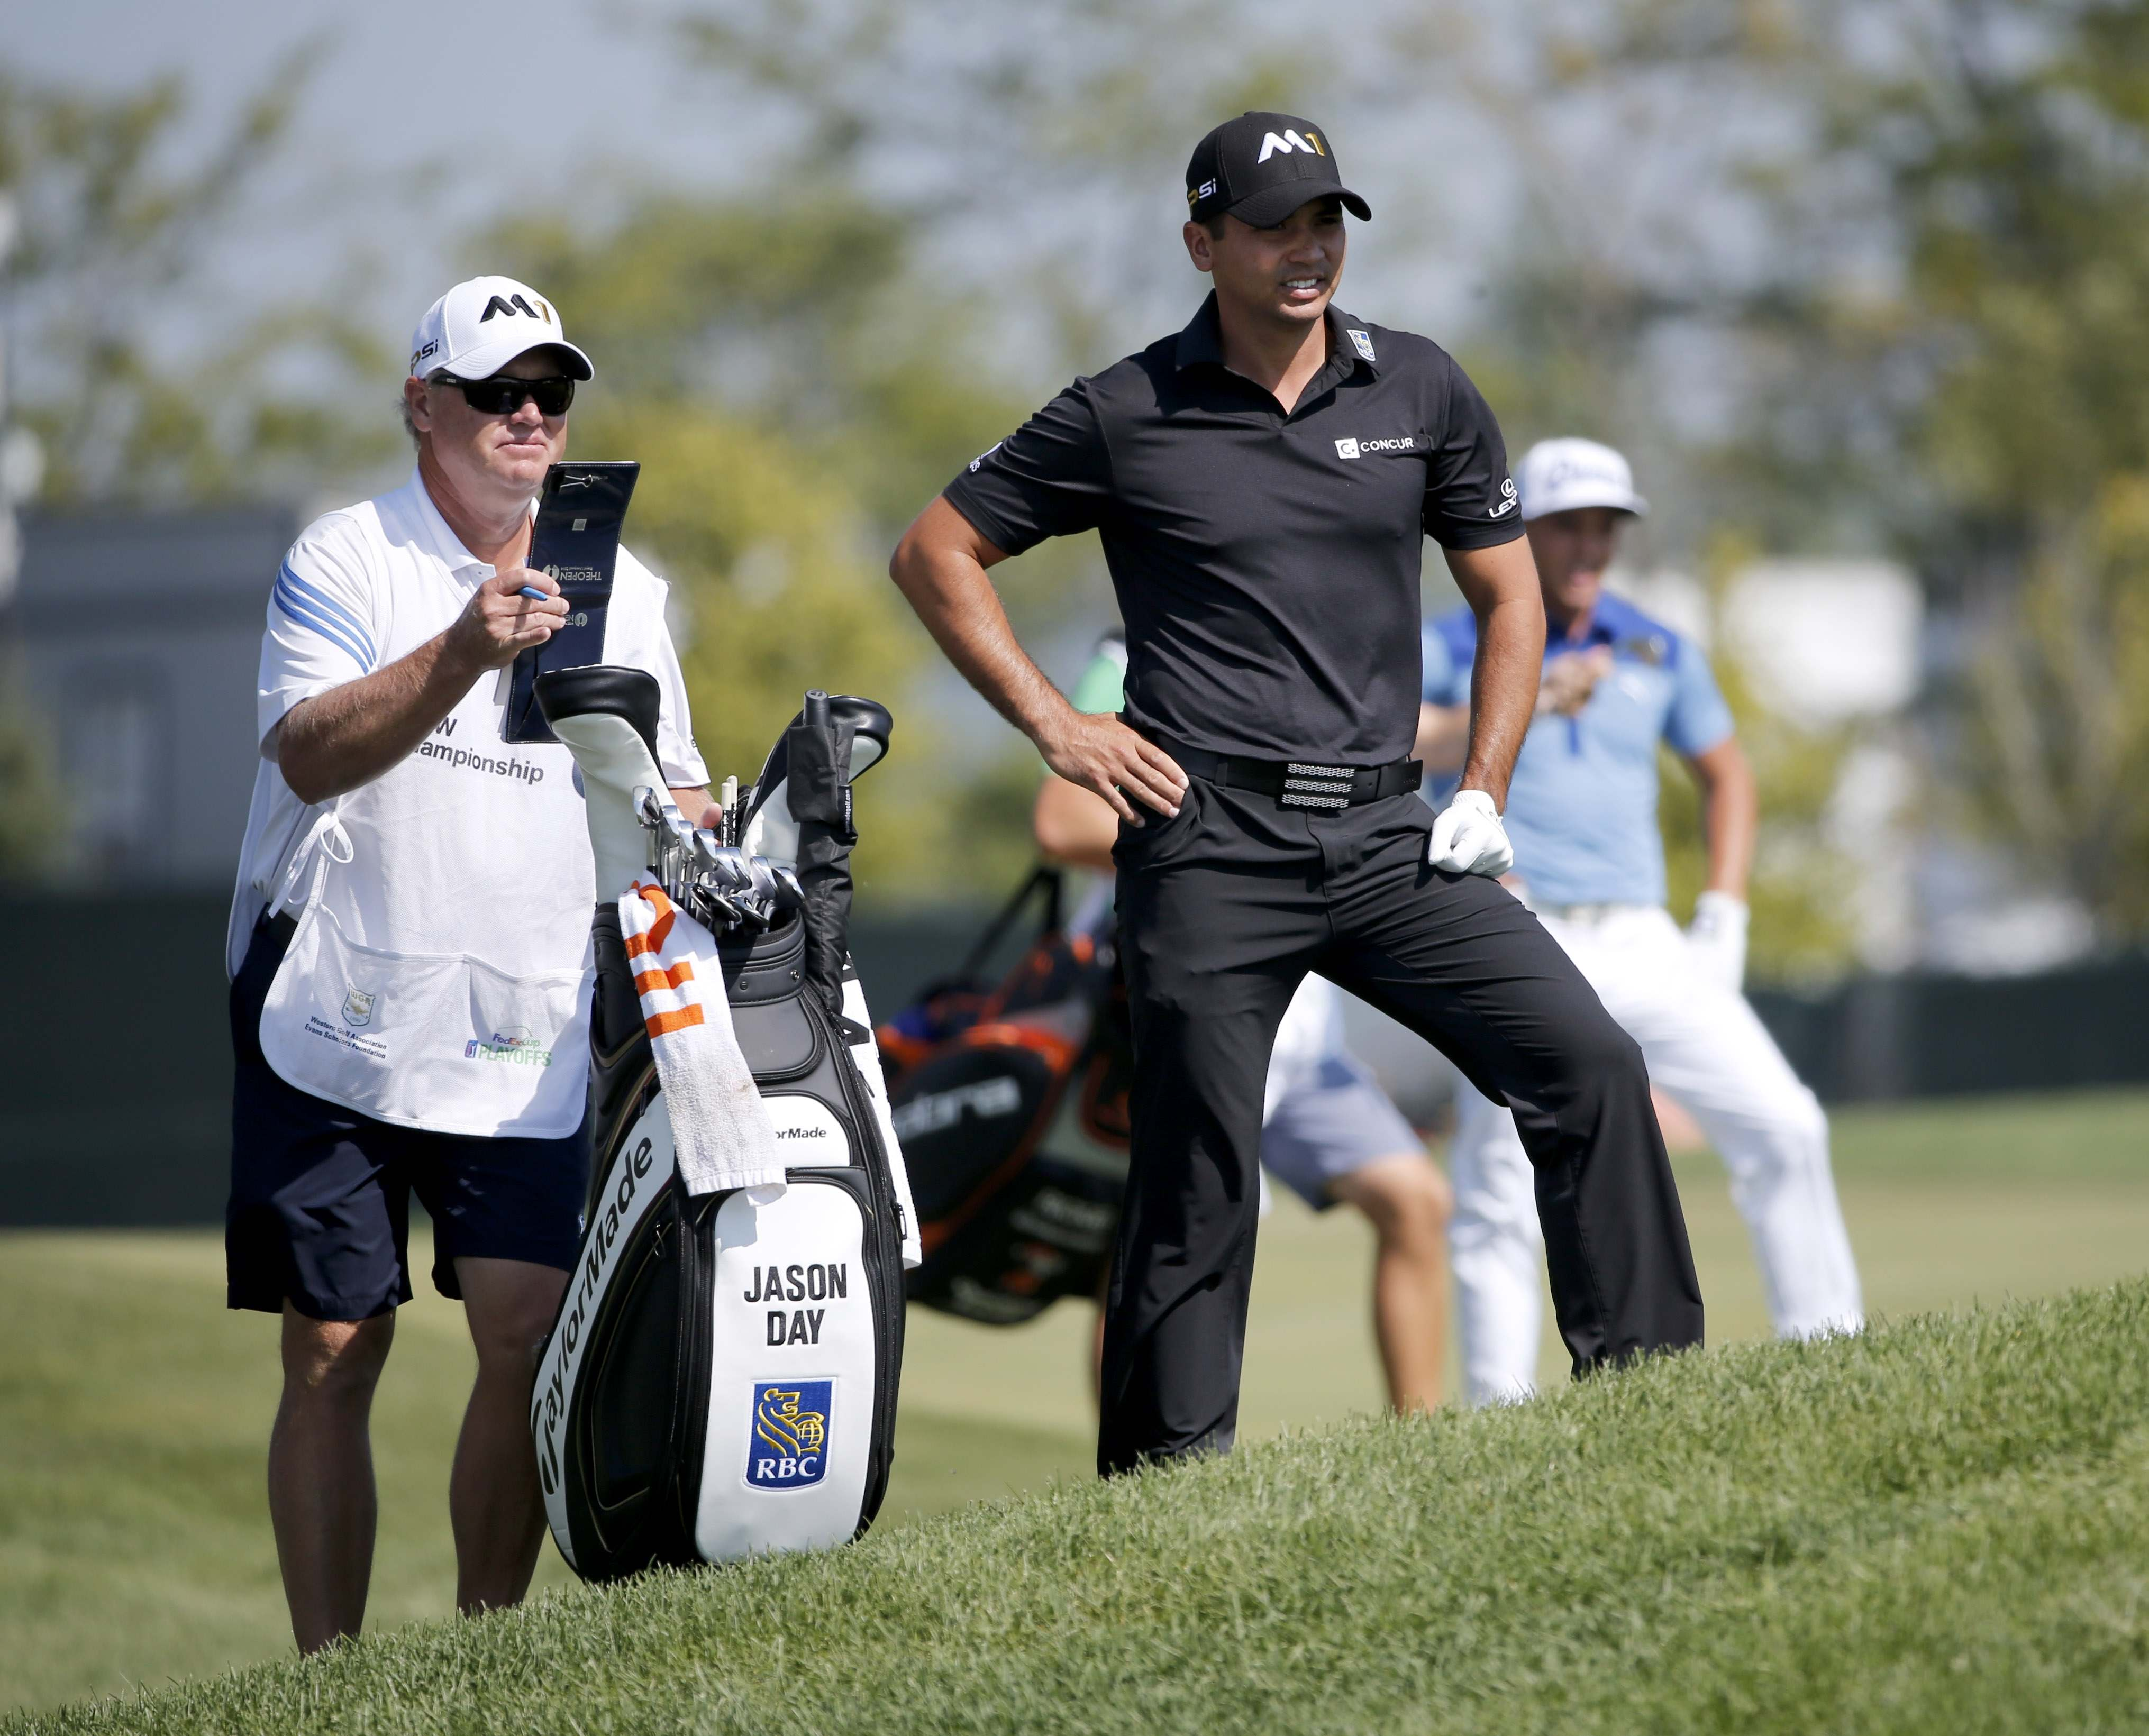 Jason Day, right, of Australia, looks over his shot from the rough with caddie Colin Swatten